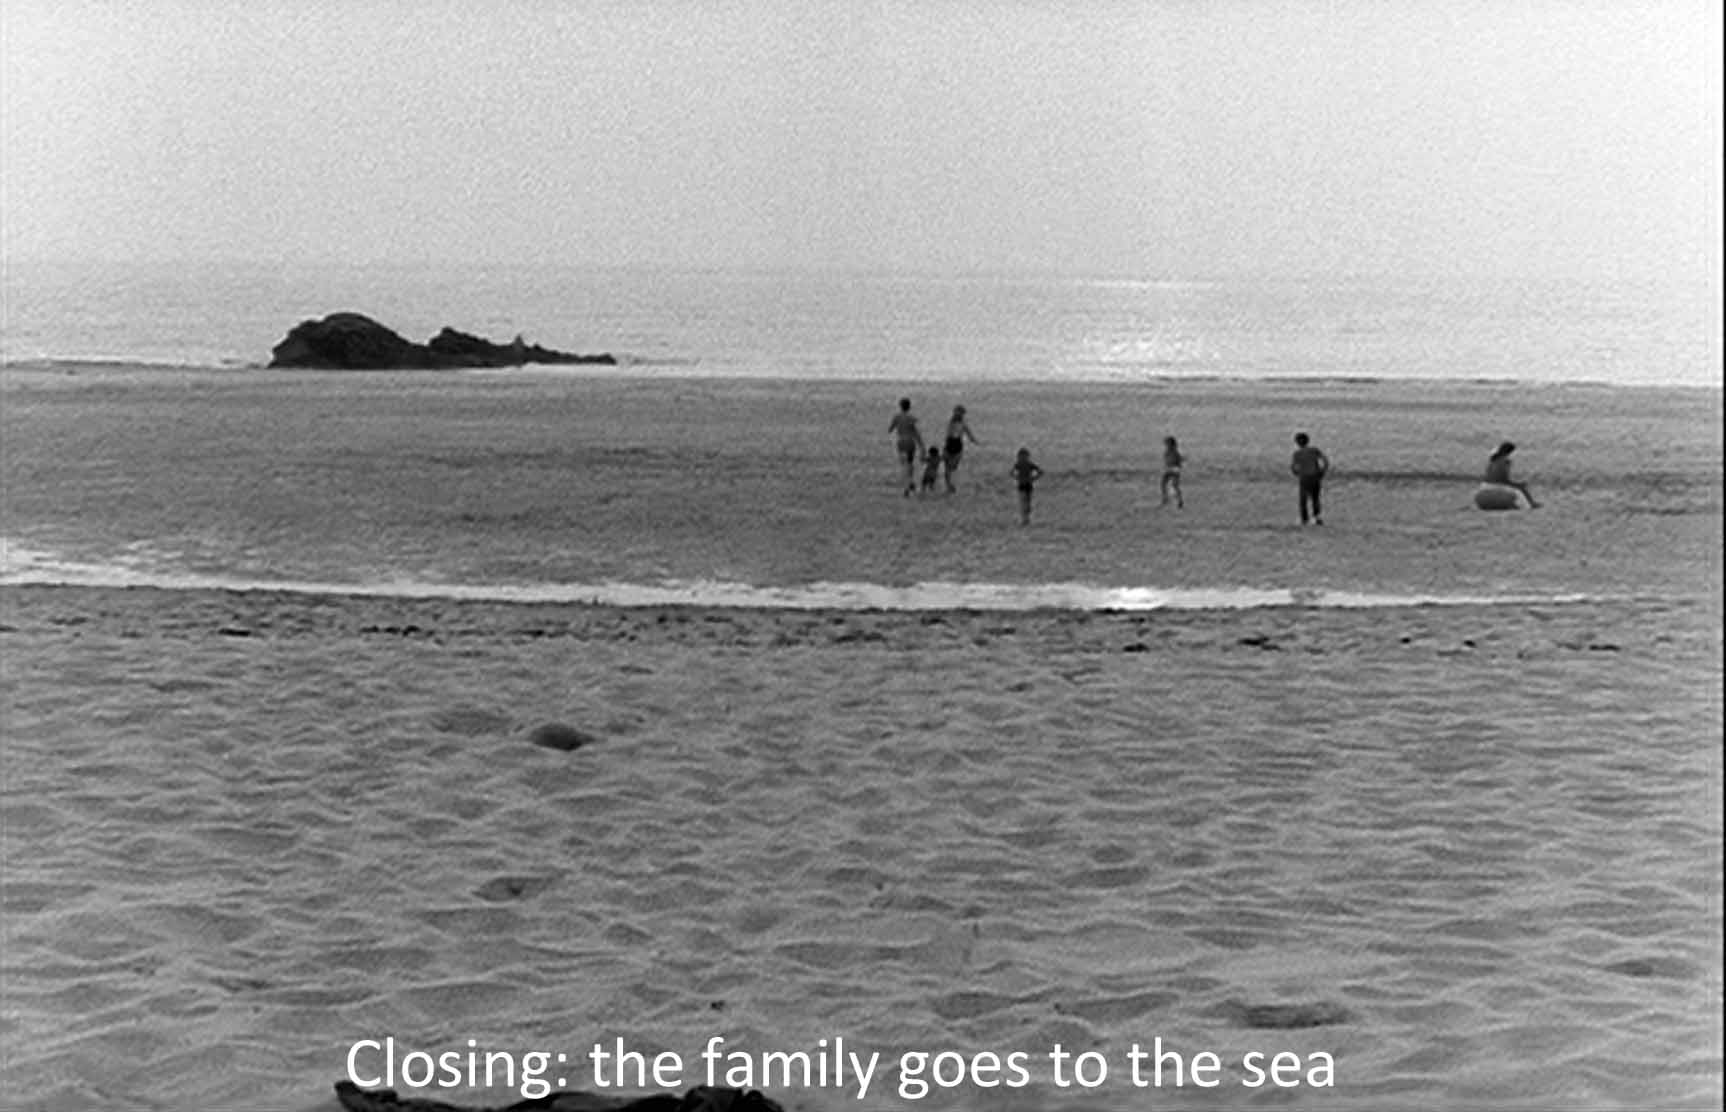 Closing: the family runs to the sea